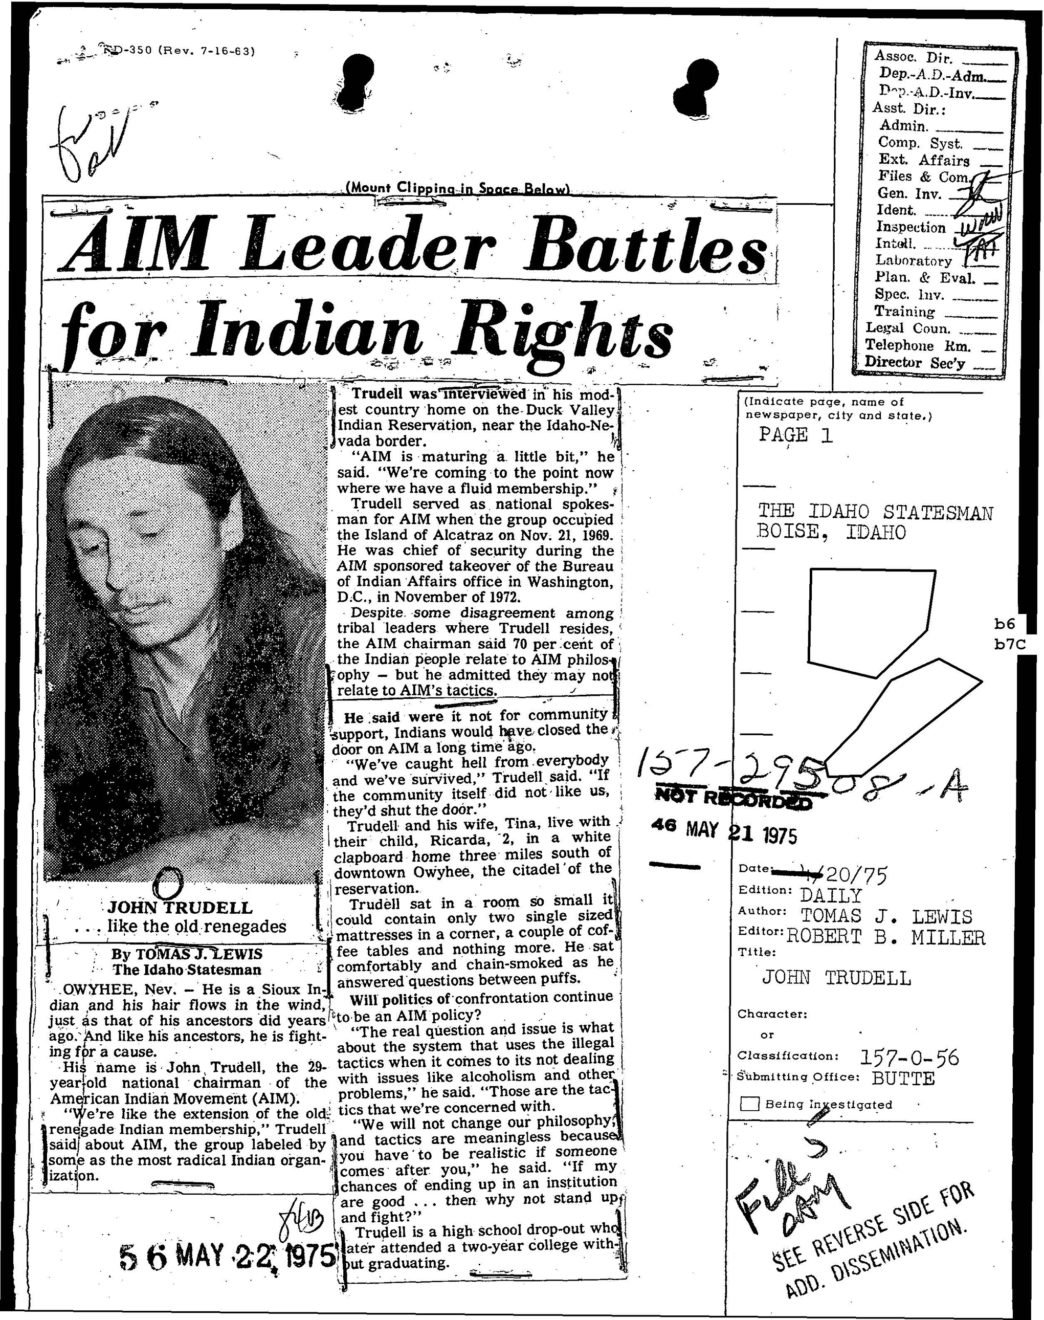 an old newspaper clipping showing a picture of a man with long dark hair